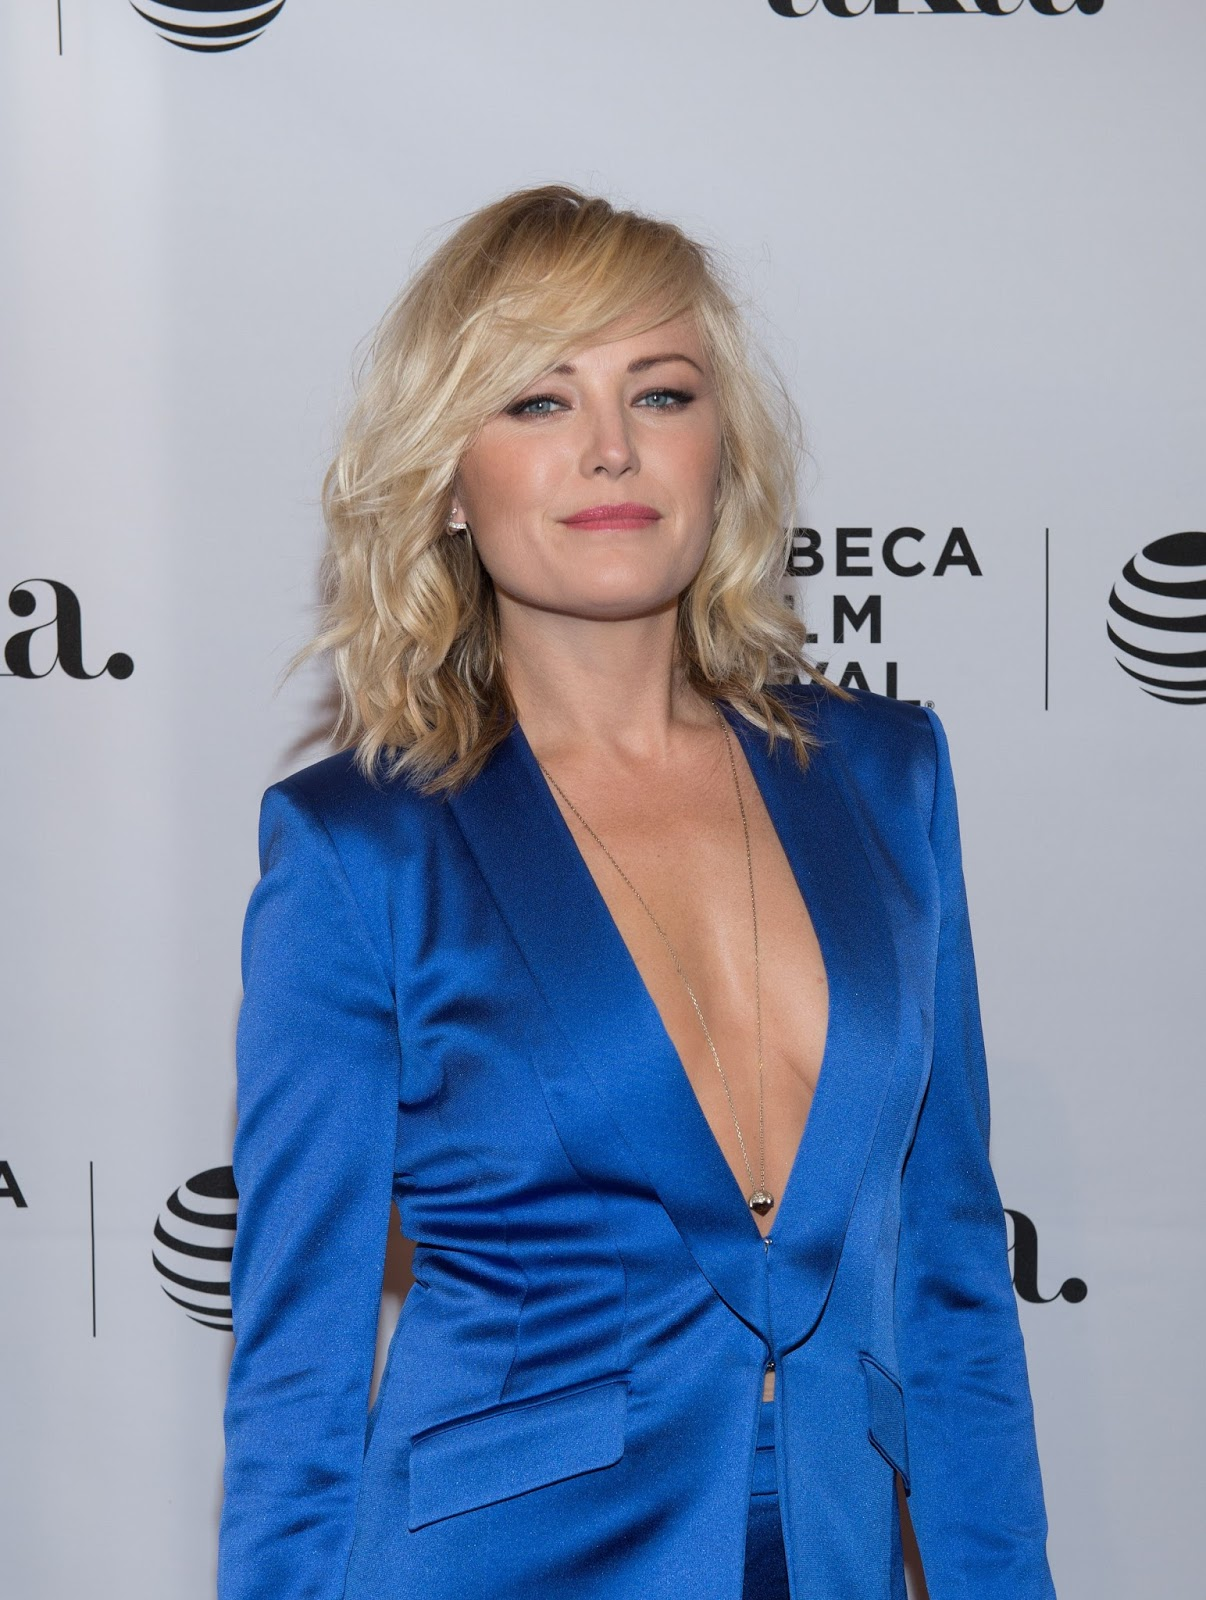 Ladies in Satin Blouses: Malin Akerman - blue satin suit Malin Akerman